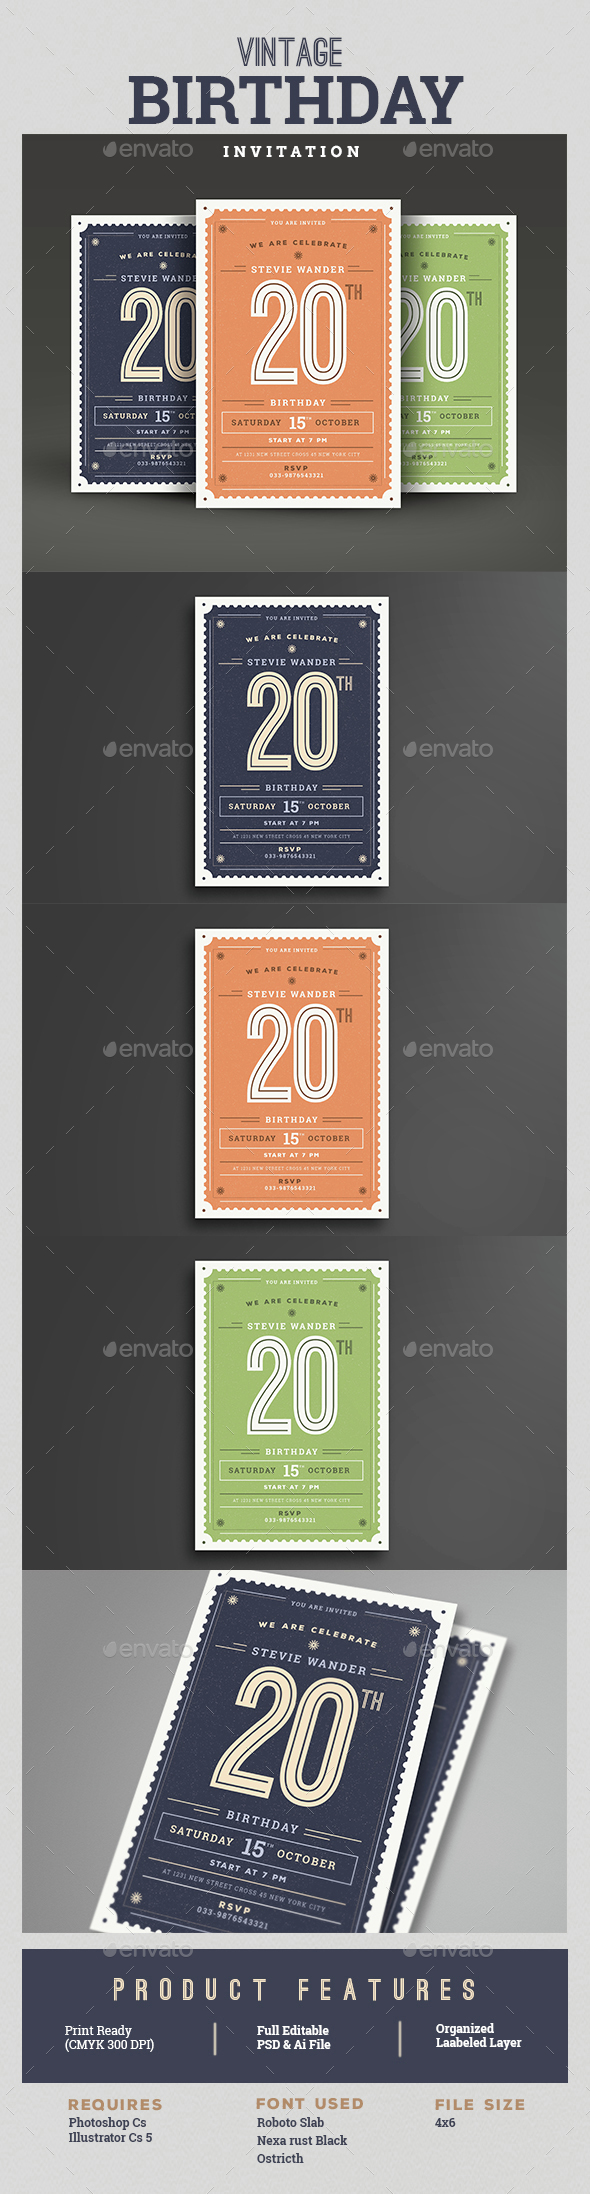 Print Ready Birthday Card Designs Templates From Graphicriver